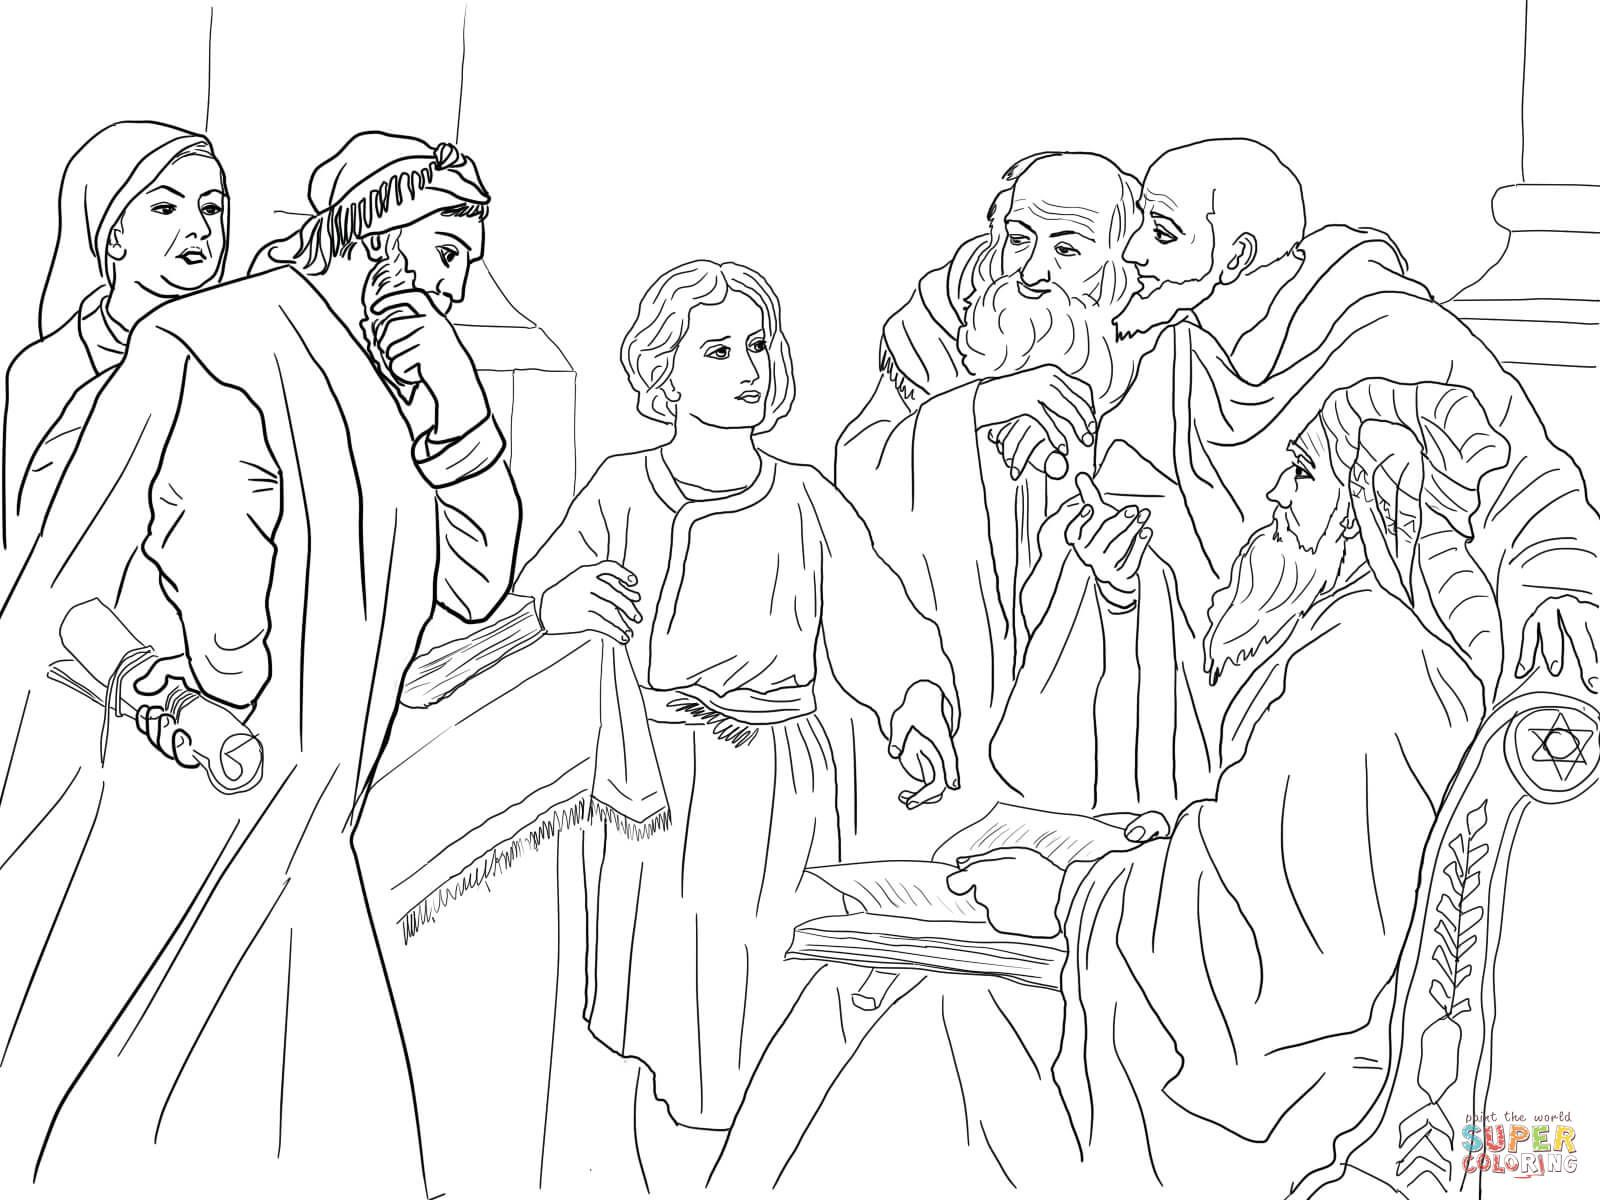 4 Boy Jesus In The Temple Heinrich Hofmann Coloring Page Jpg 1600